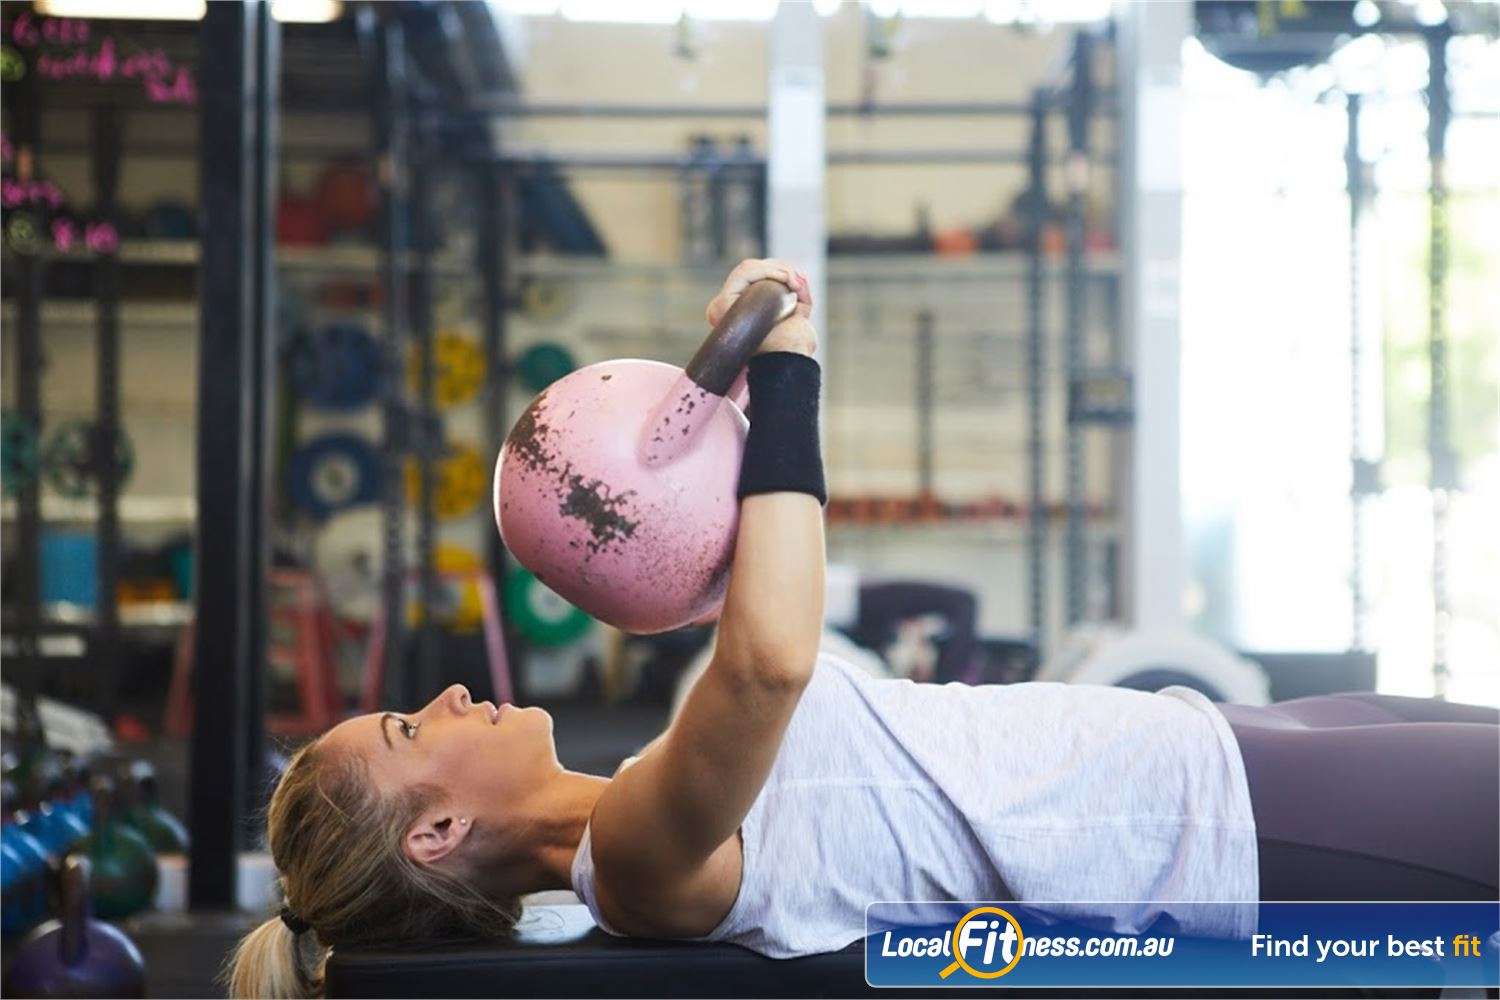 KettleFit Ascot Vale Travancore KettleFit Ascot Vale gym delivers a different workout every day.